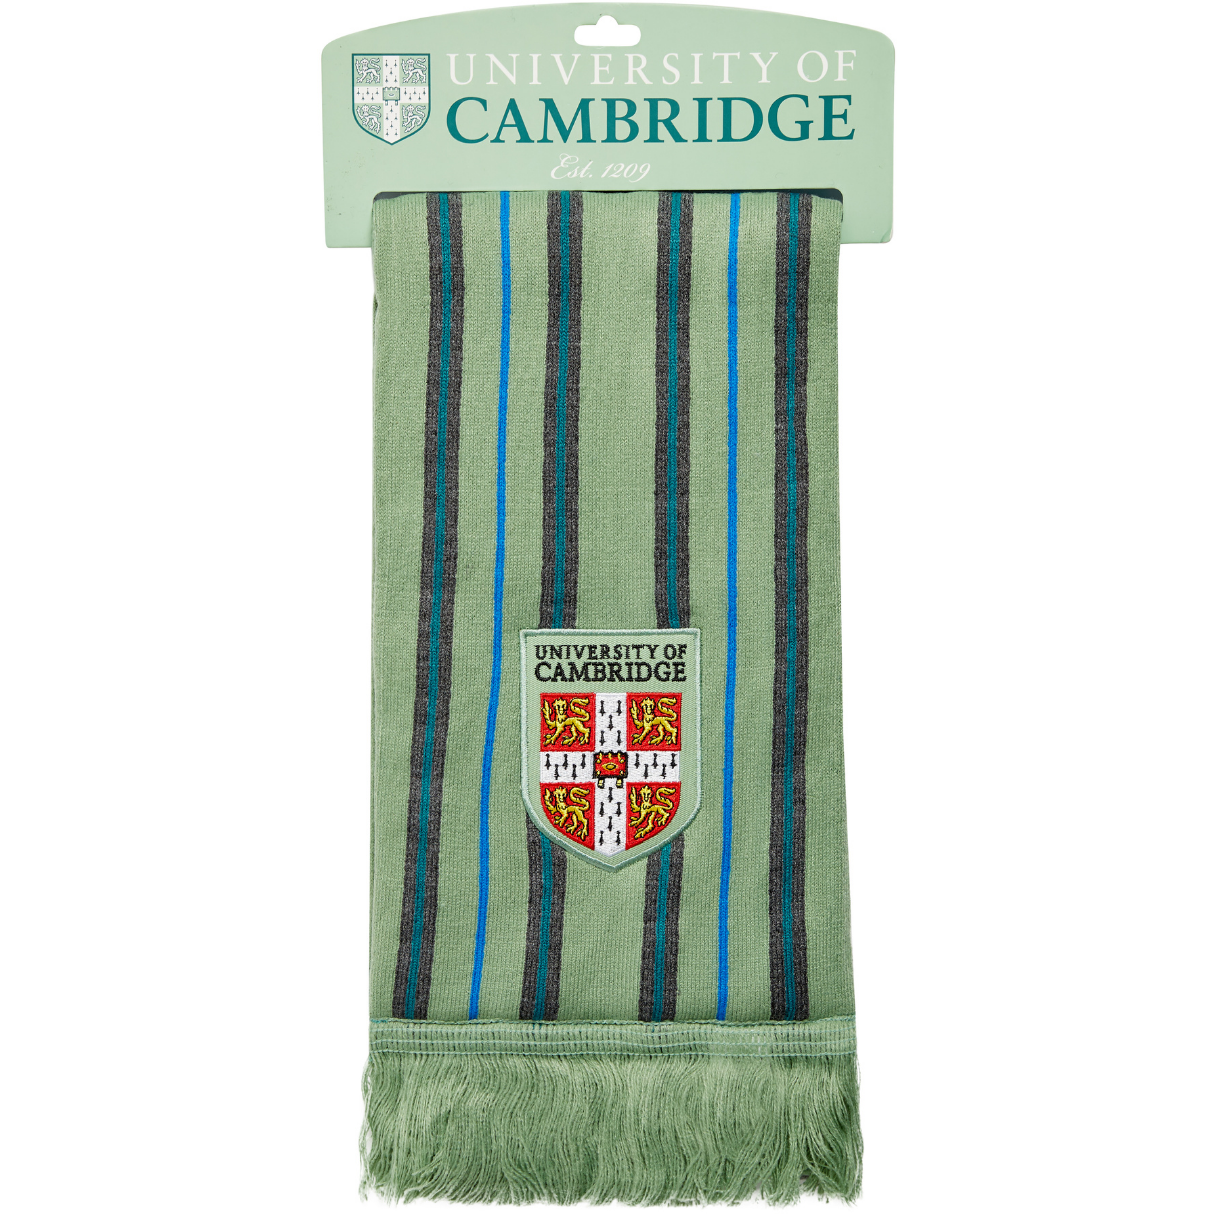 Featured image for the project: University of Cambridge Scarf